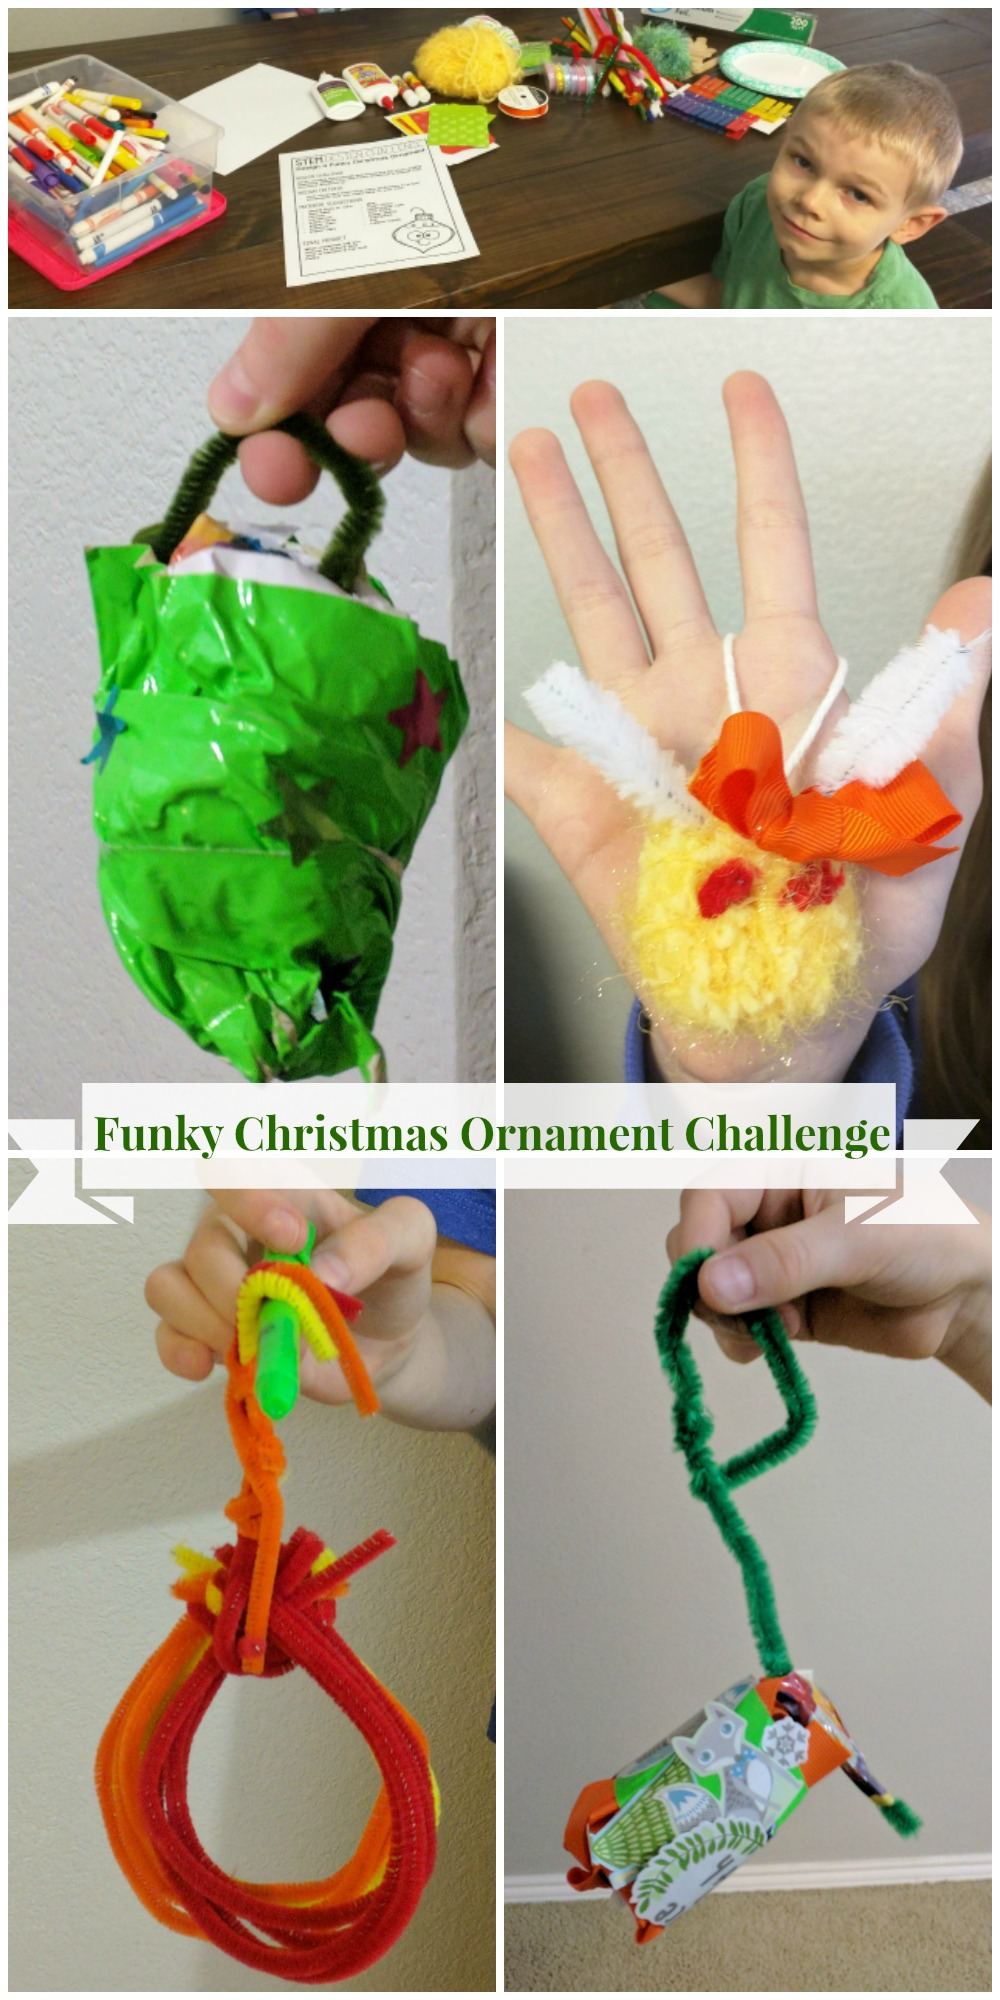 Funky Christmas Ornament Challenge from Tied 2 Teaching STEM Activities